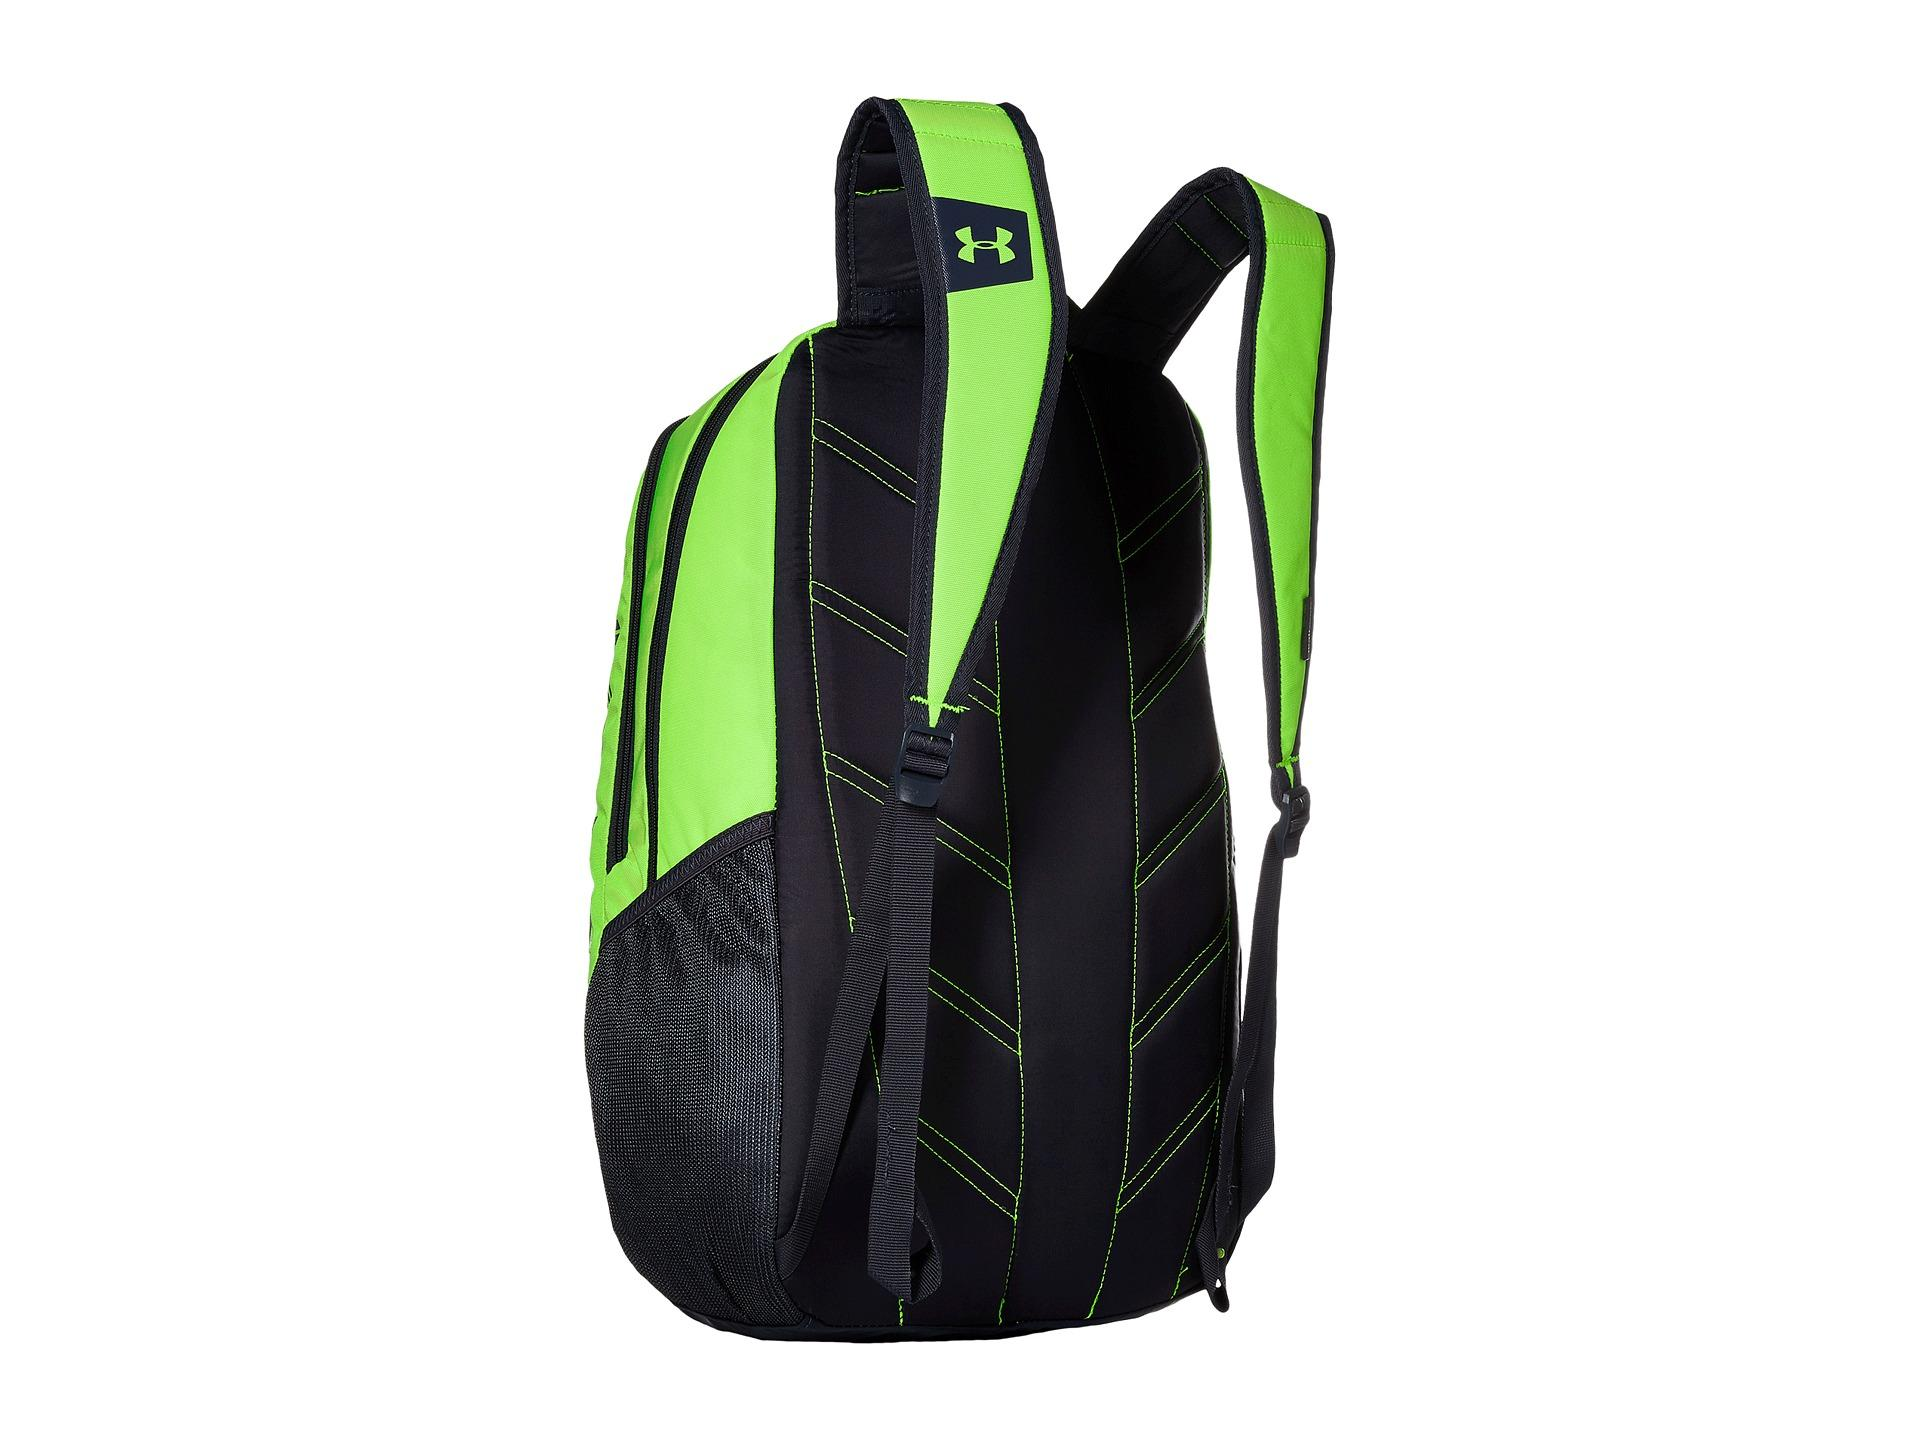 Lyst - Under Armour Ua Hustle Backpack Ii in Green 5c5740beefa0d